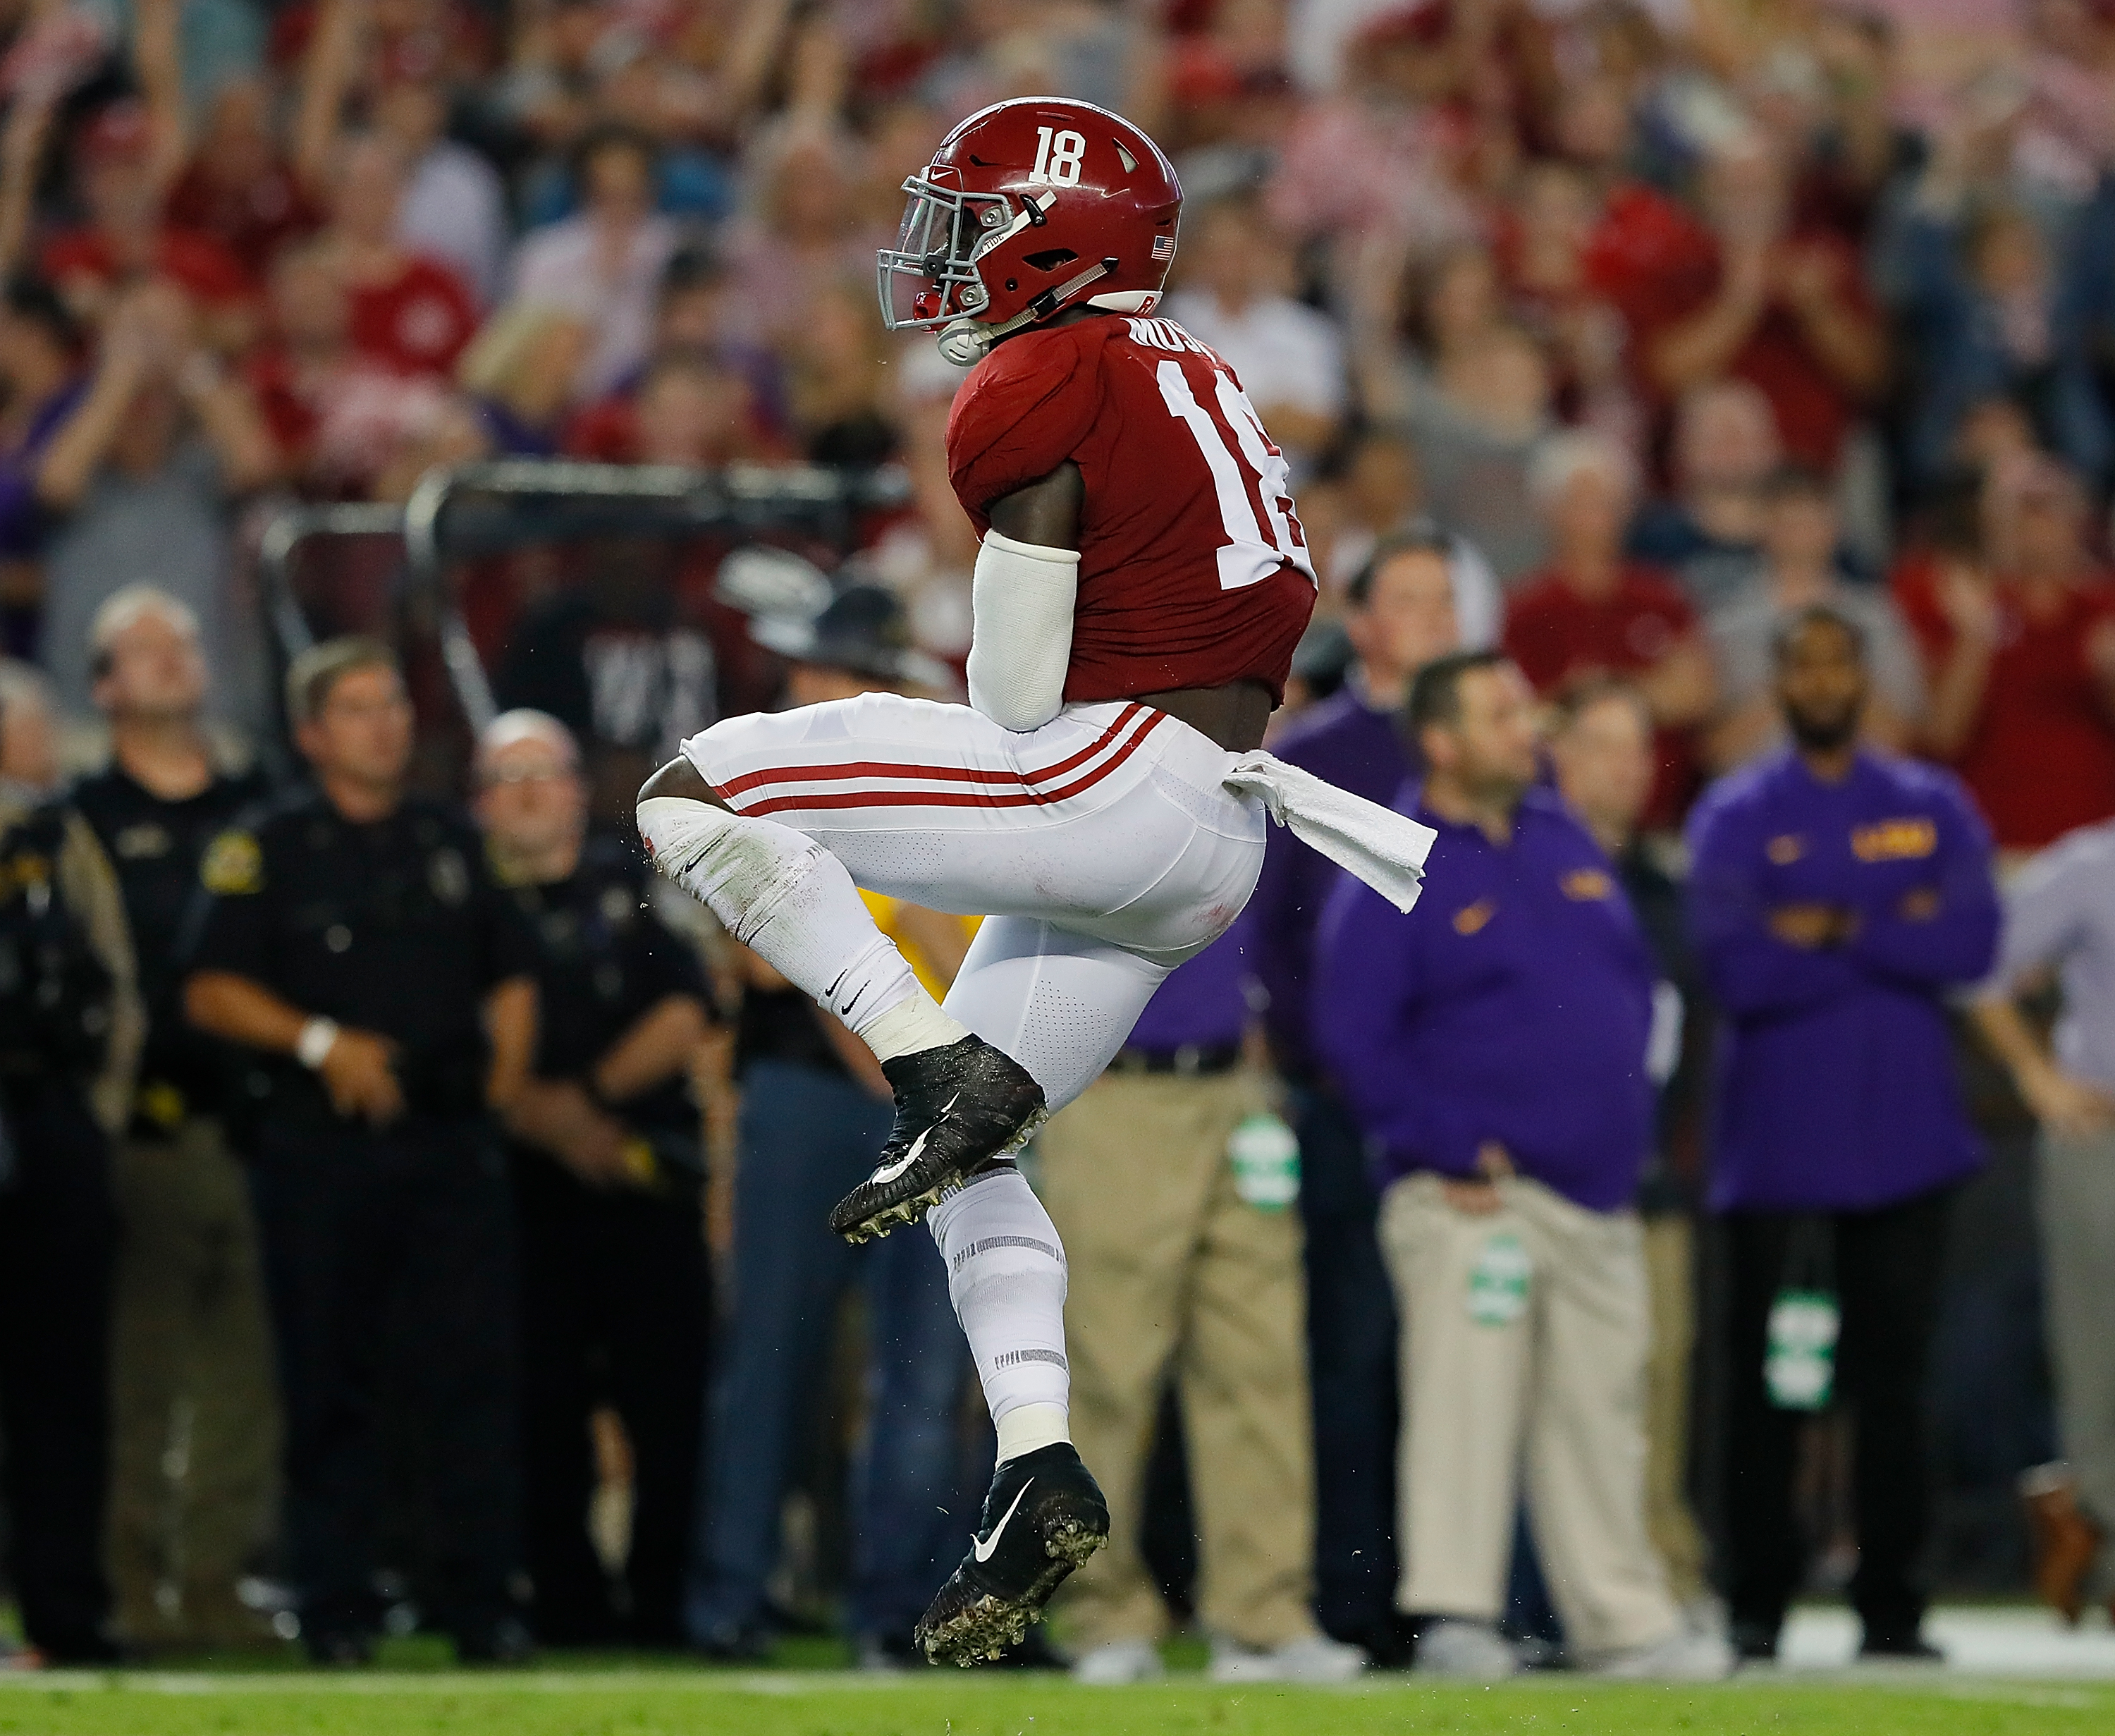 Alabama's Playoff linebacker health was already iffy, and it just got worse